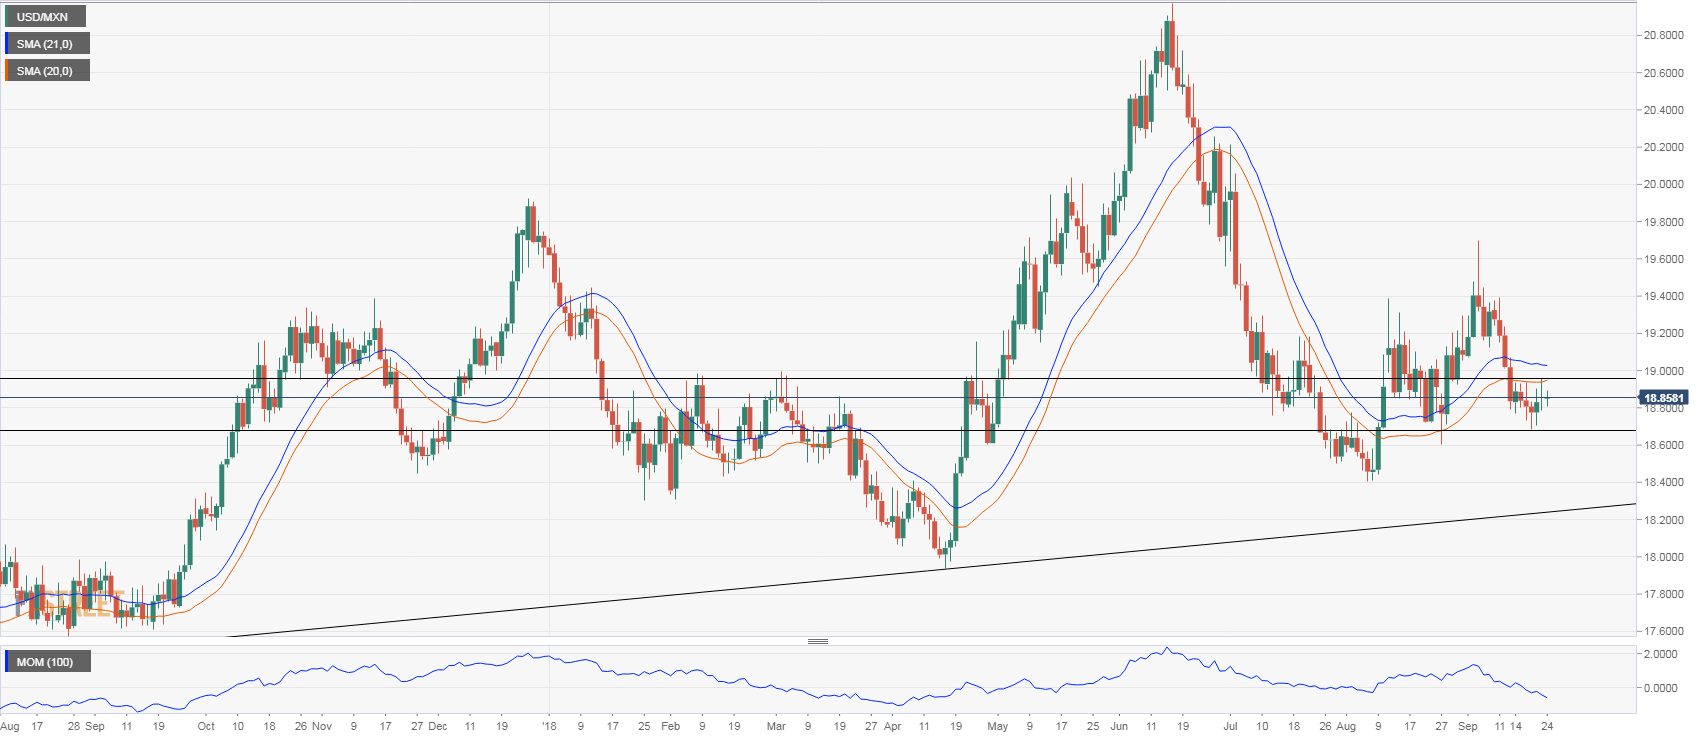 USD MXN Technical Analysis Consolidation Continues Near 1880 Under The 20 DMA